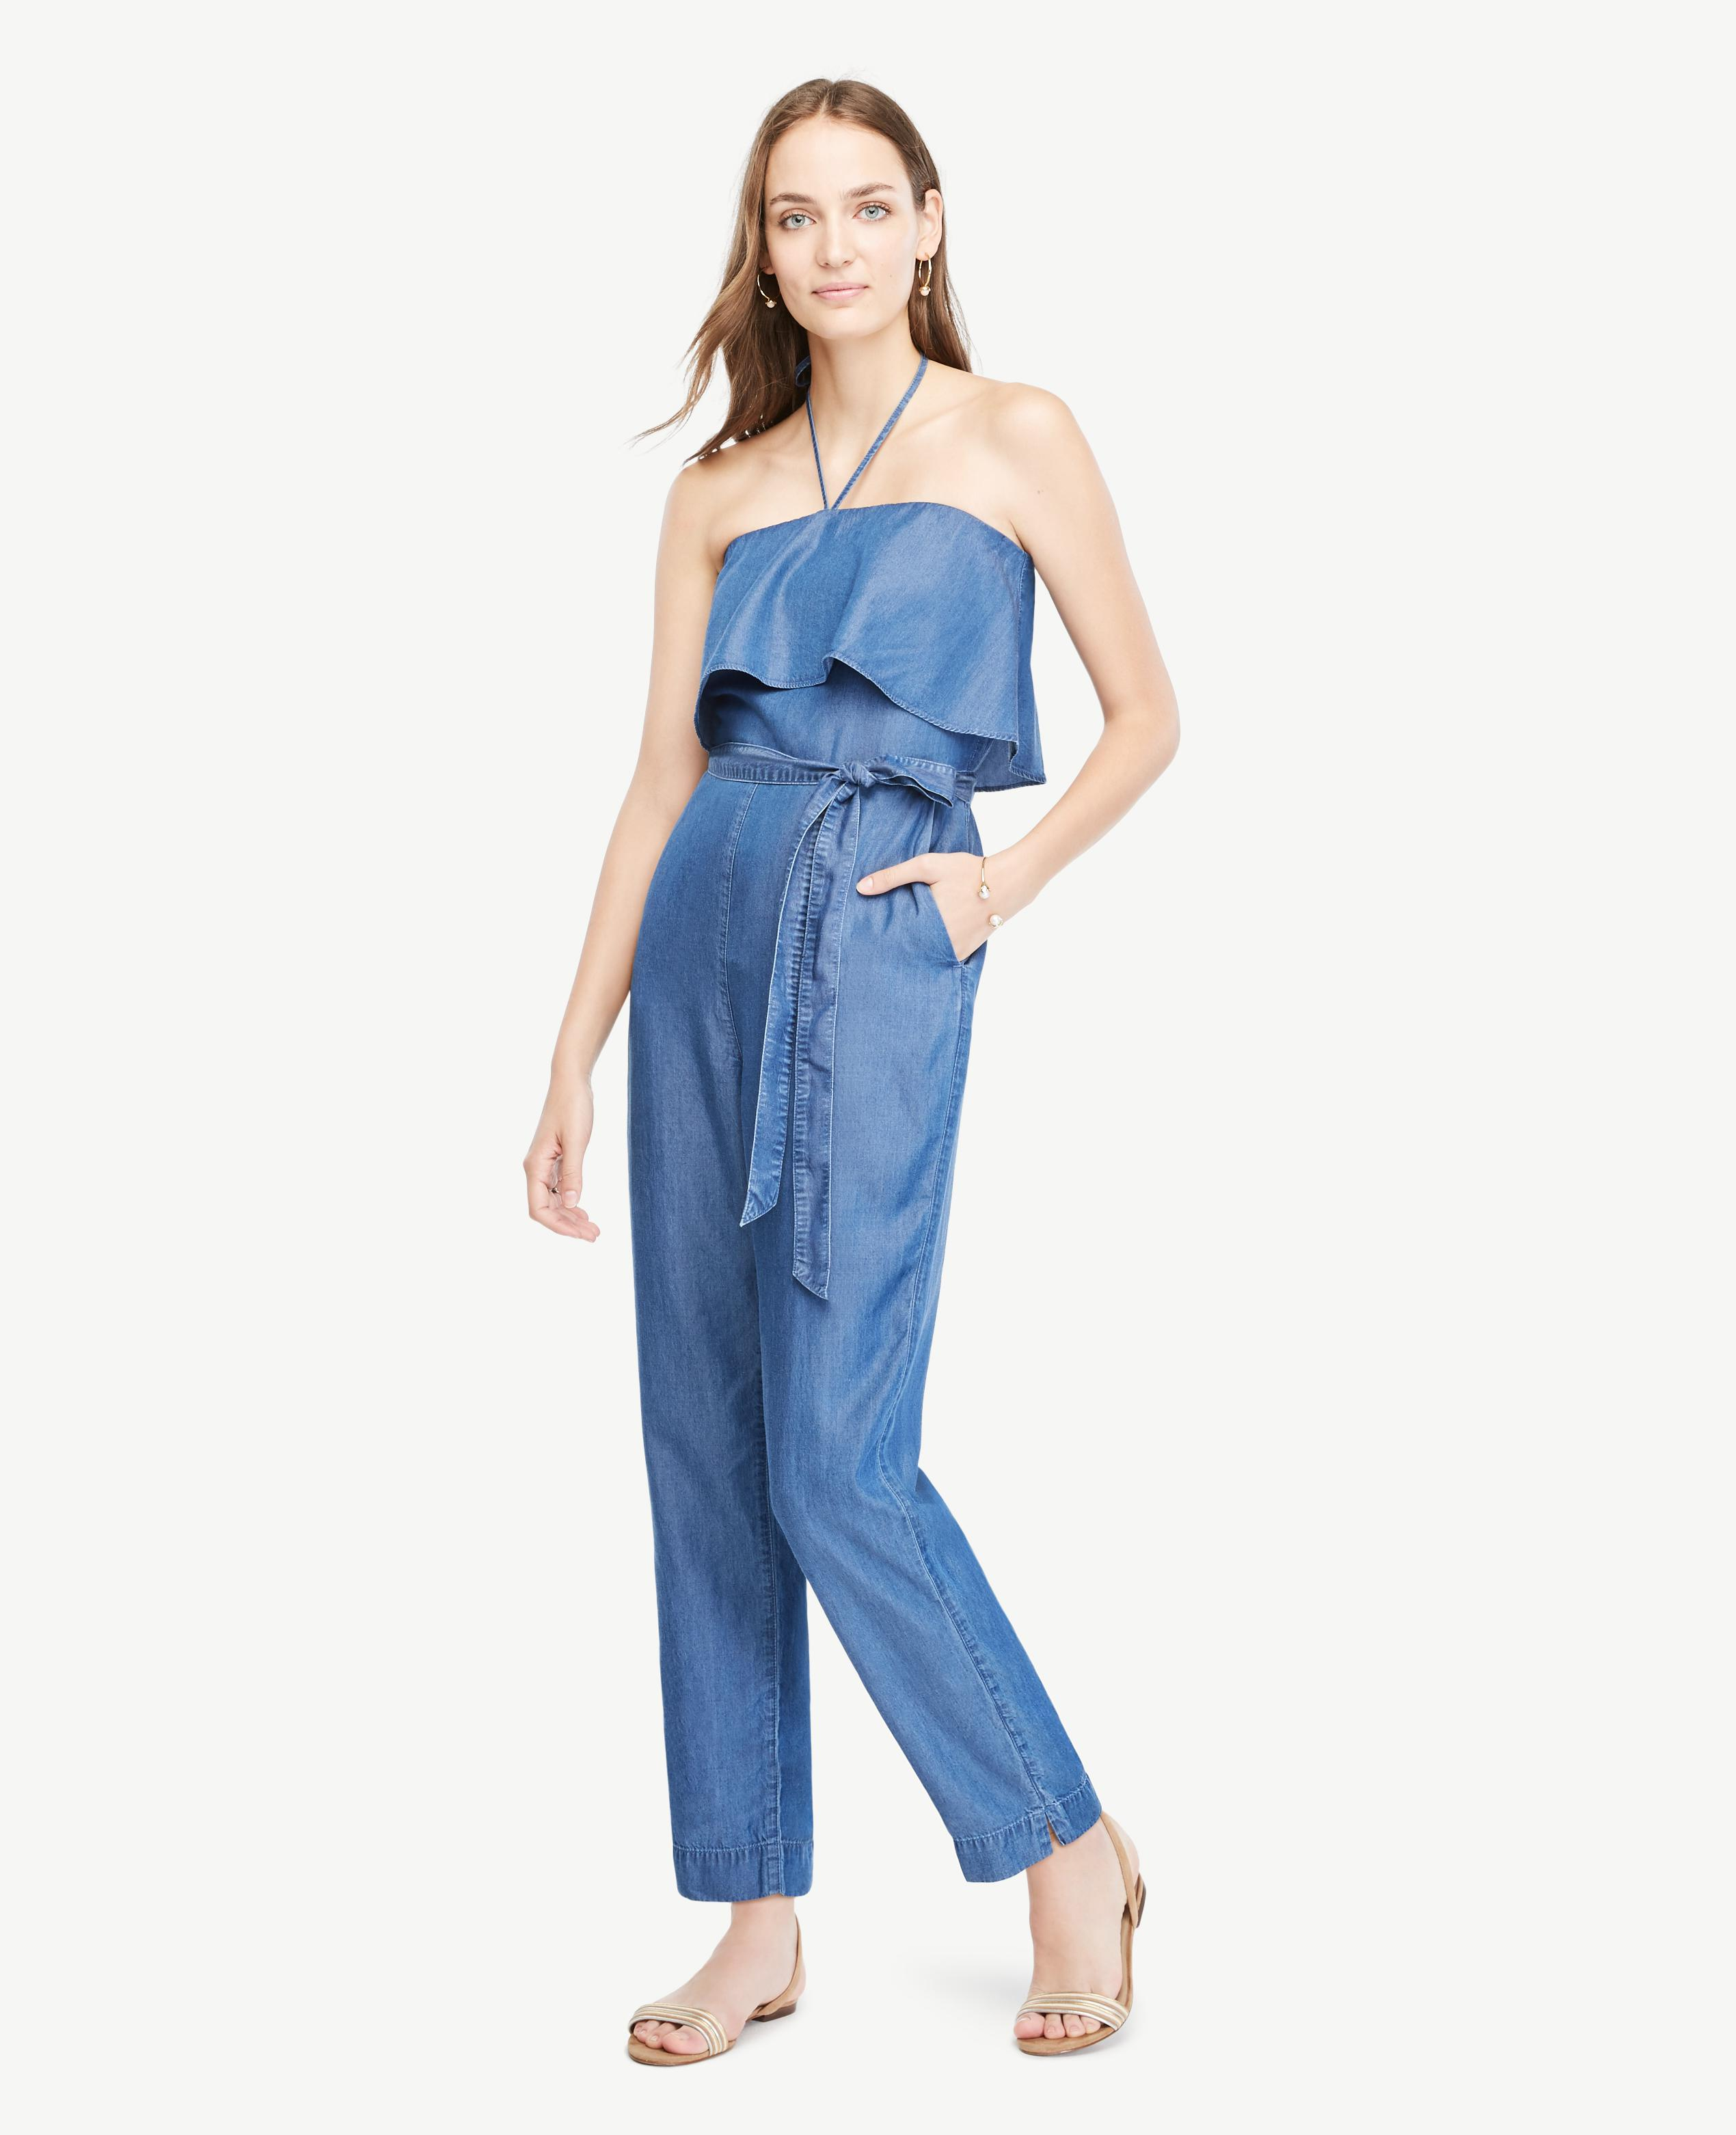 60918d85f20d Lyst - Ann Taylor Petite Chambray Halter Top Jumpsuit in Blue